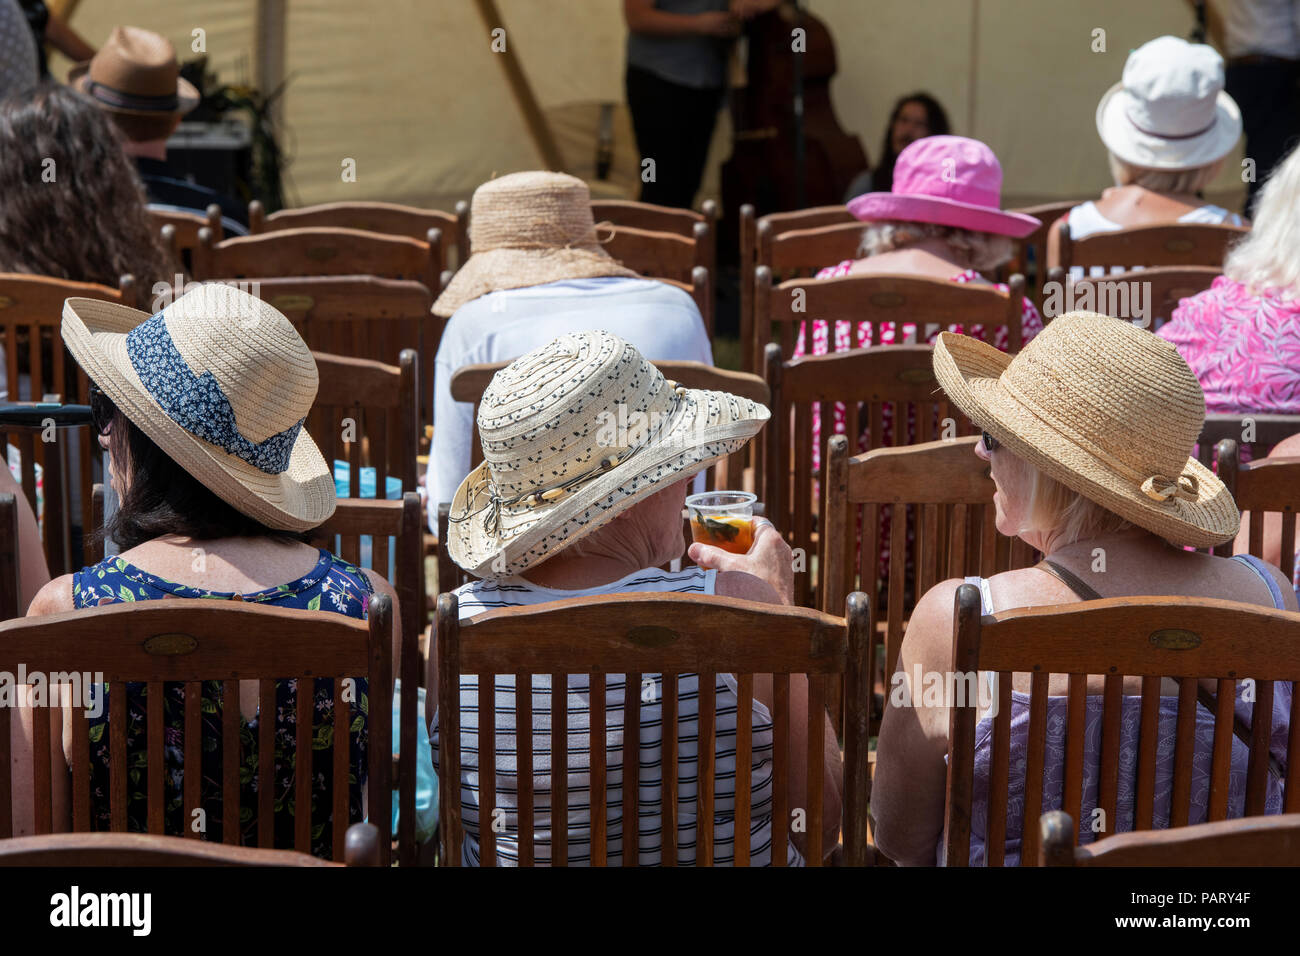 Women wearing summer hats sitting in wooden chairs at RHS Hampton court Flower show. London, UK - Stock Image